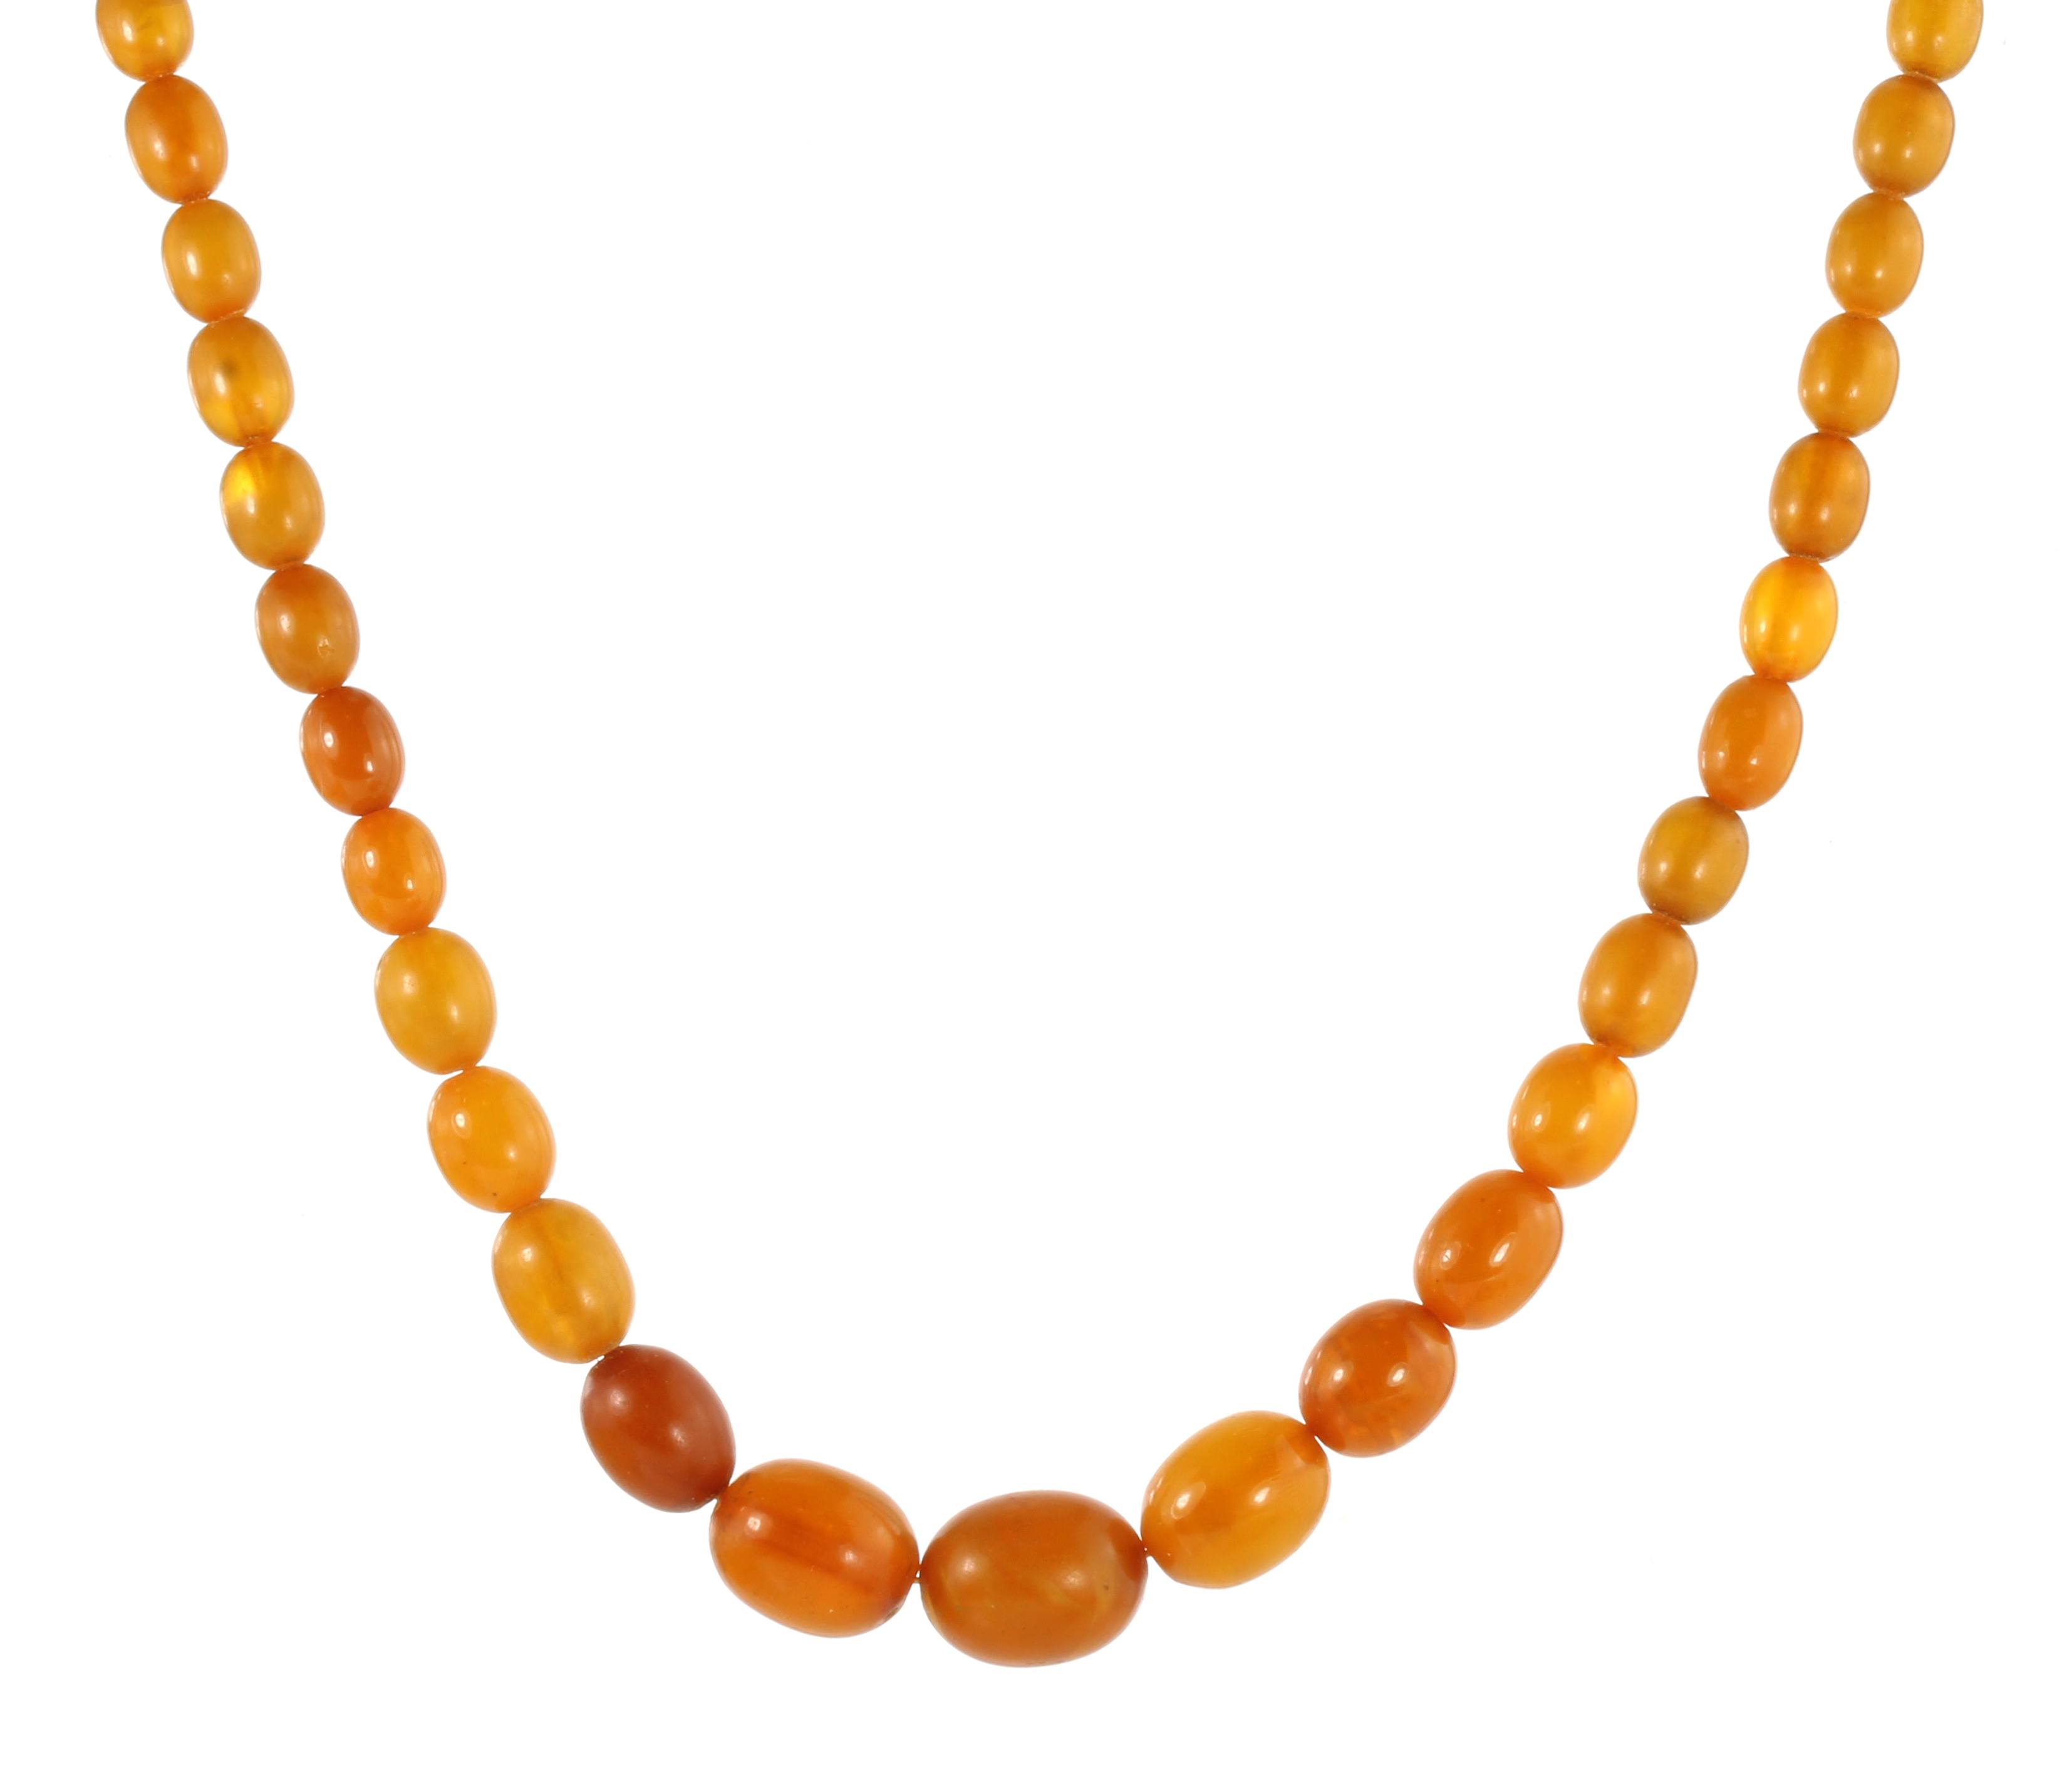 Los 12 - A NATURAL AMBER BEAD NECKLACE comprising a single row of seventy-six graduated polished oval beads